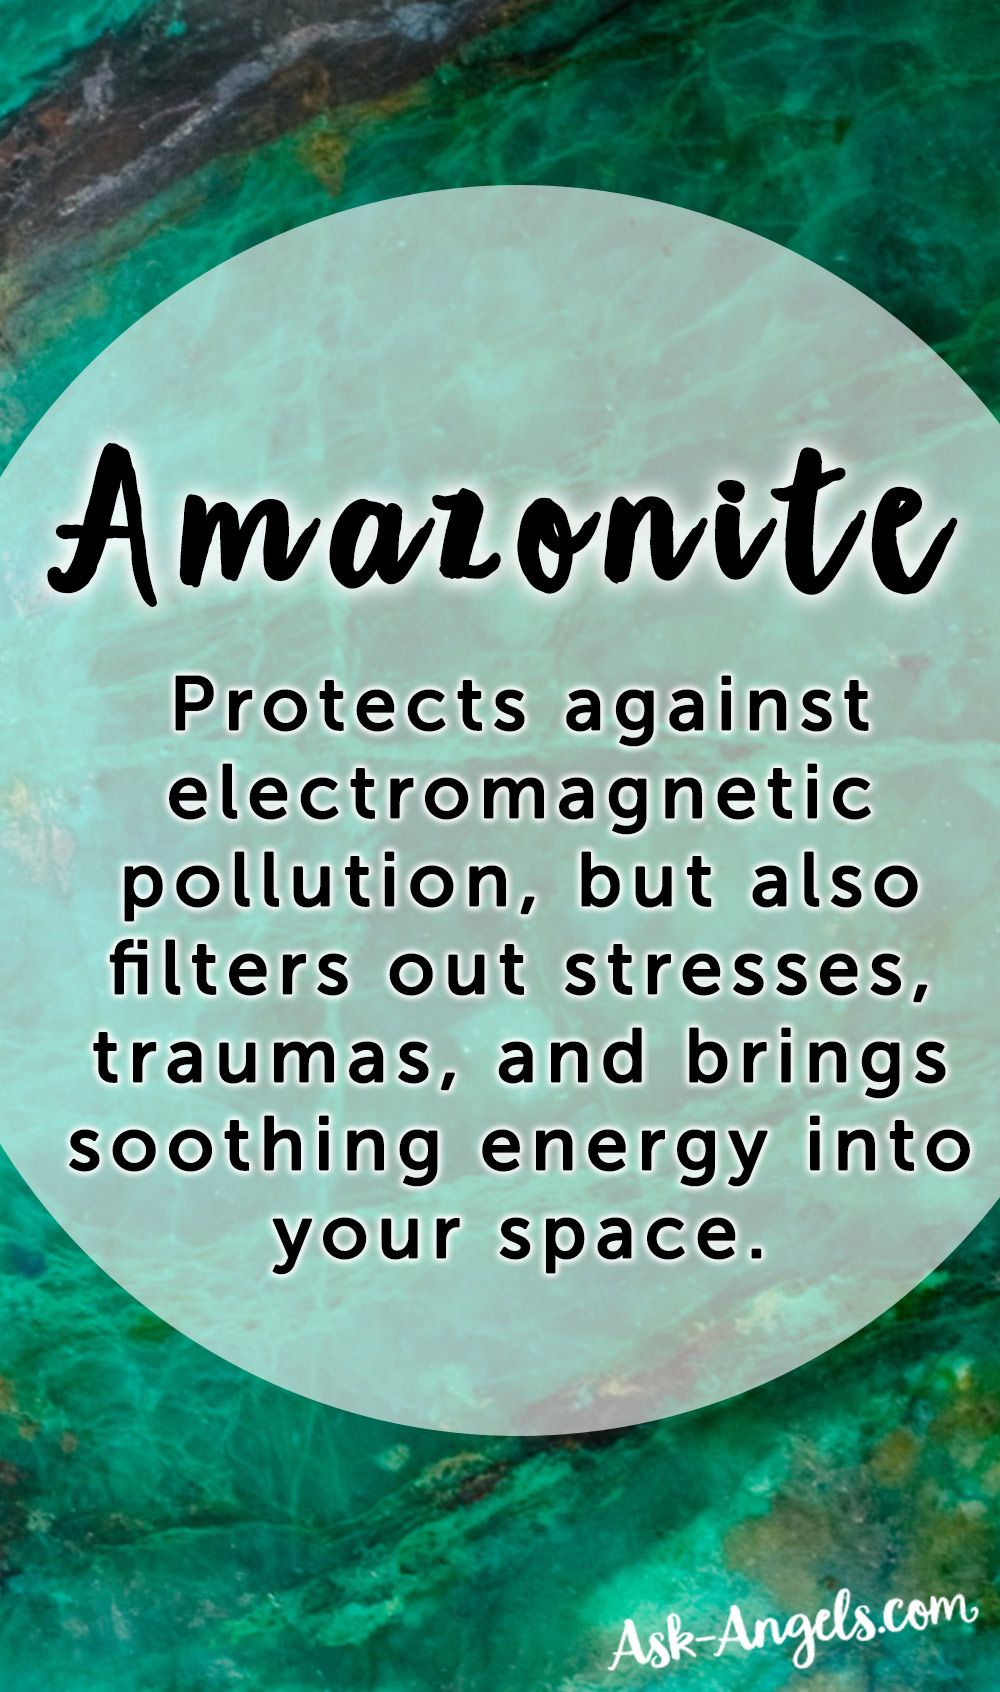 Amazonite's subtle vibrations not only protect against electromagnetic pollution, but also filter out stresses, traumas, and brings soothing energy into your space.